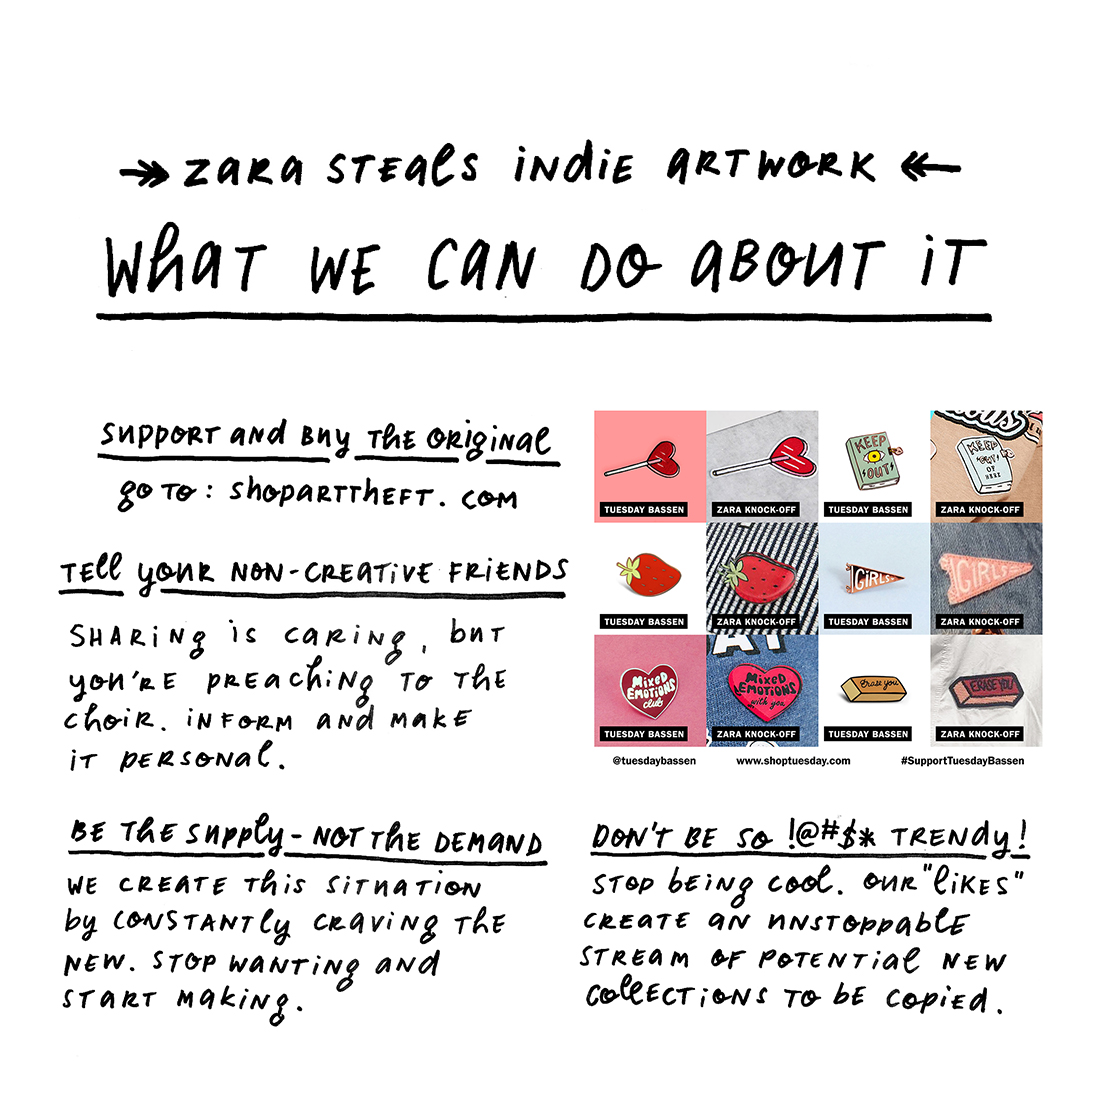 Tuesday Bassen vs Zara - indie artwork stolen - what we can do - Paper Marche Studio - Janneke de Jong